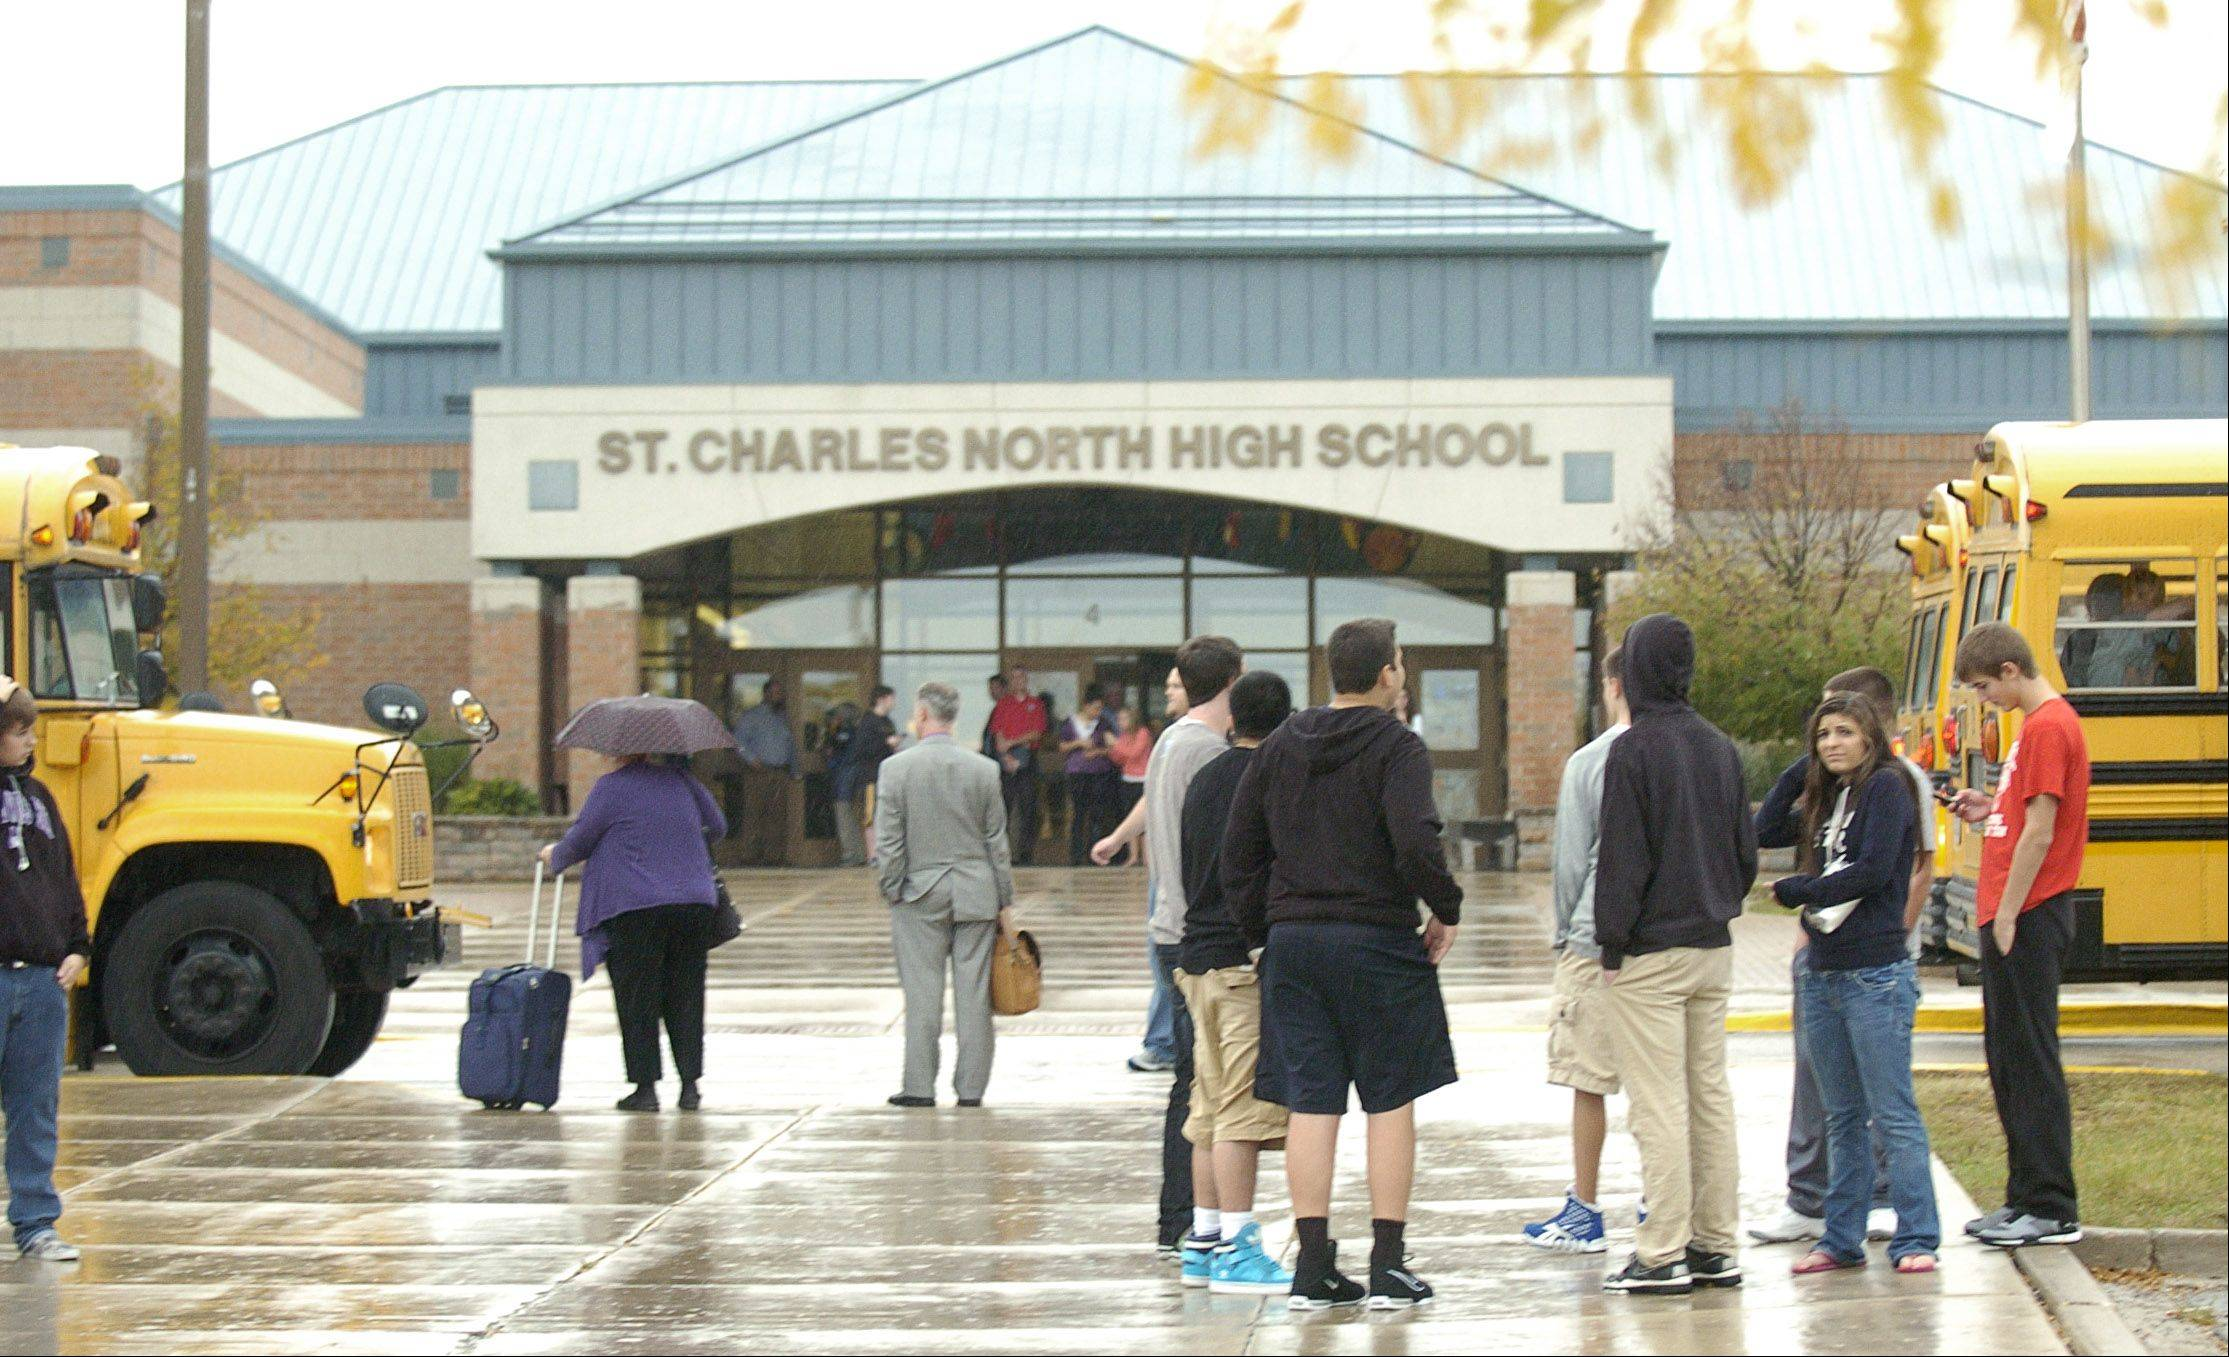 Evacuated students at St. Charles North High School load buses or wait for their parents to pick them up after the school was shut down following a �security breach� early Thursday afternoon. Students were not allowed to take their backpacks or coats, only their cellphones or other personal items.